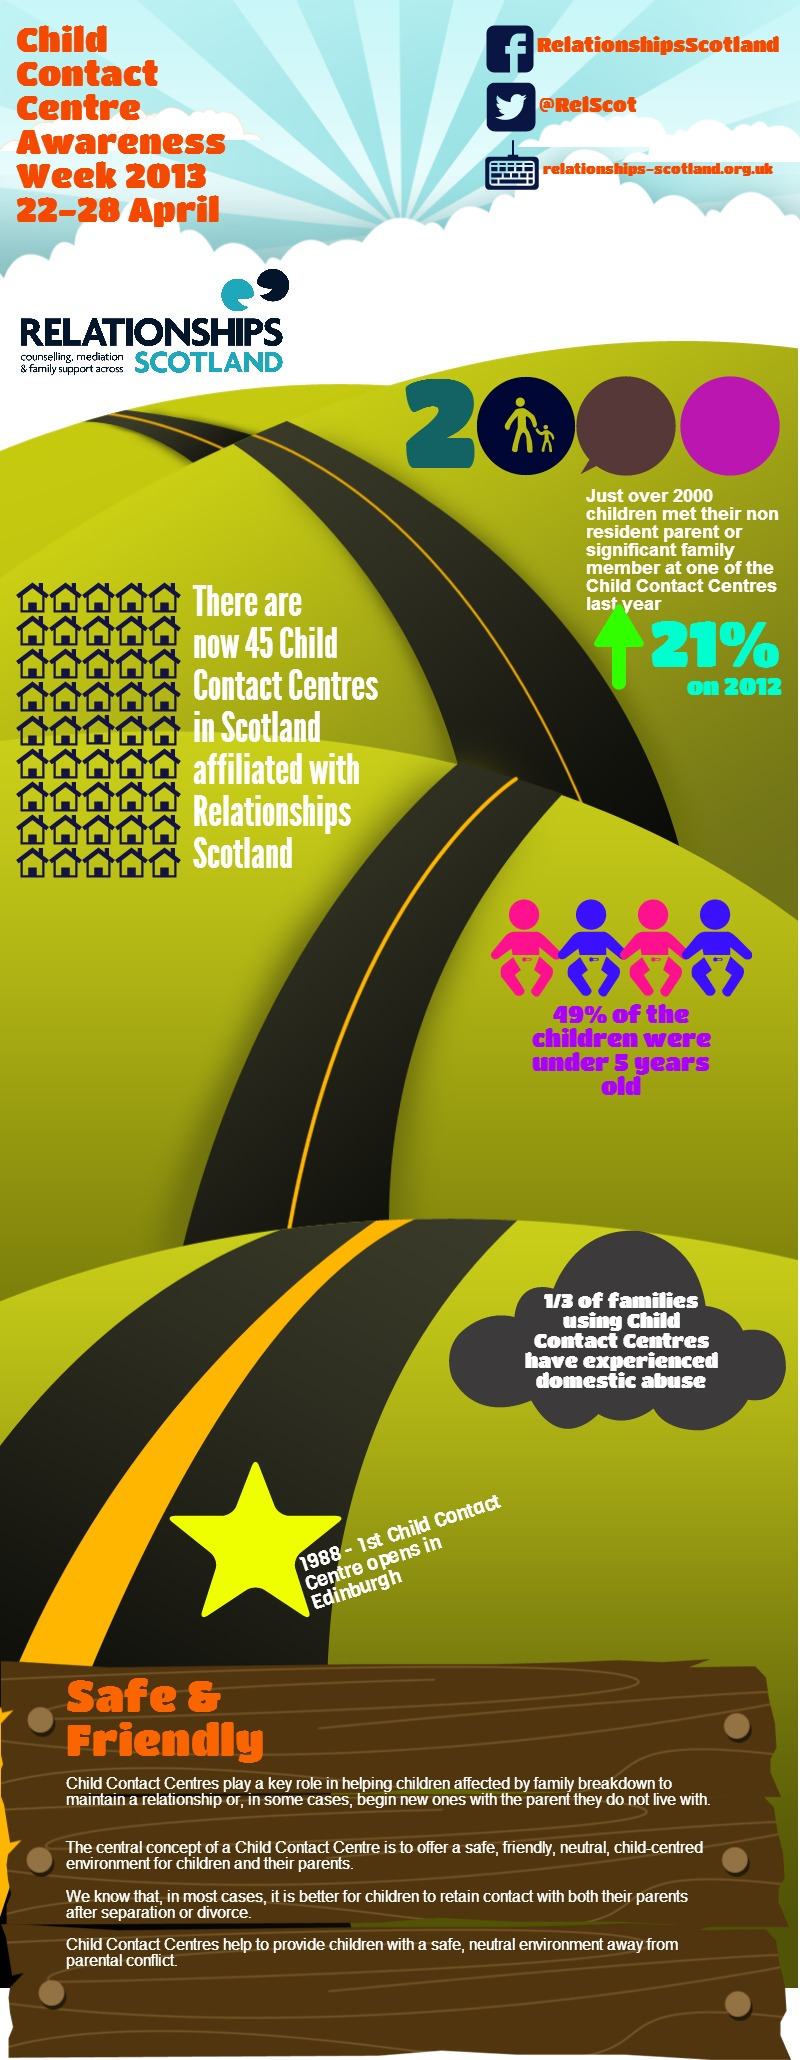 Child Contact Cenre Awareness Week 2013 Infographic